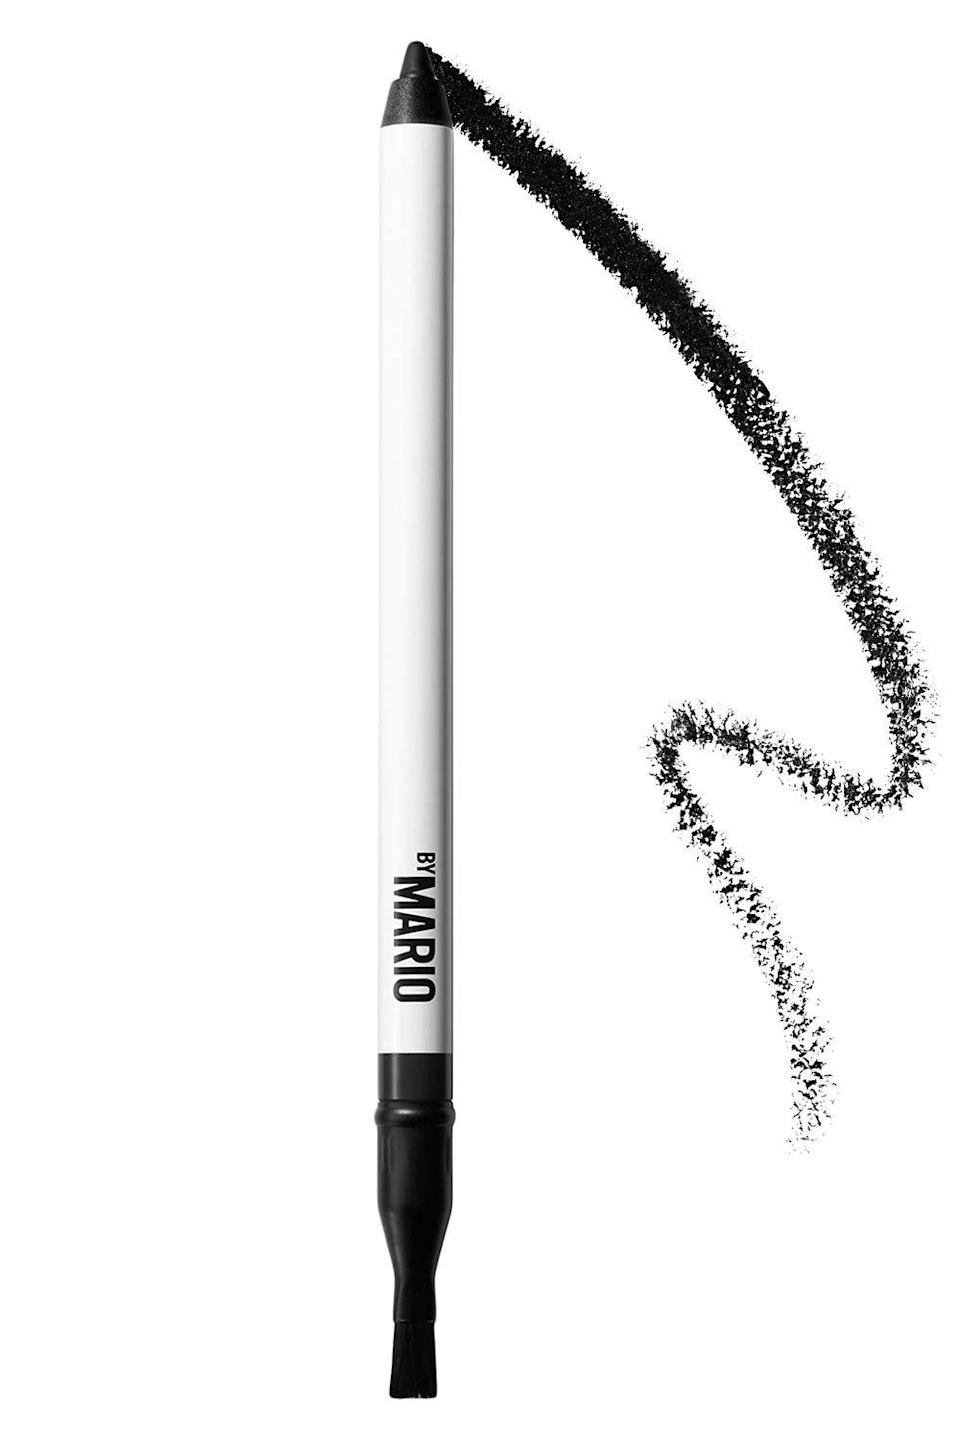 "<p><strong>$22.00</strong></p><p><a href=""https://www.makeupbymario.com/products/master-pigment-pro%E2%84%A2-pencil?variant=Super+Black"" rel=""nofollow noopener"" target=""_blank"" data-ylk=""slk:Shop Now"" class=""link rapid-noclick-resp"">Shop Now</a></p><p>It's no secret that <a href=""https://www.cosmopolitan.com/style-beauty/beauty/a34192962/mario-dedivanovic-makeup-by-mario-review/"" rel=""nofollow noopener"" target=""_blank"" data-ylk=""slk:I'm basically in love with this eyeliner pencil"" class=""link rapid-noclick-resp"">I'm basically in love with this eyeliner pencil</a> (the Save the Dates are going in the mail soon). The <strong>gel-like formula glides right on and it doesn't fade, </strong>no matter how greasy your eyelids get. The brush on the opposite end of the pencil is also perf if you want to smudge out your liner and create a smokey eye look.</p><p><strong>✨ PROMOTION:</strong> 15% off + free standard domestic shipping with promo code <strong>HAULIDAY</strong></p>"